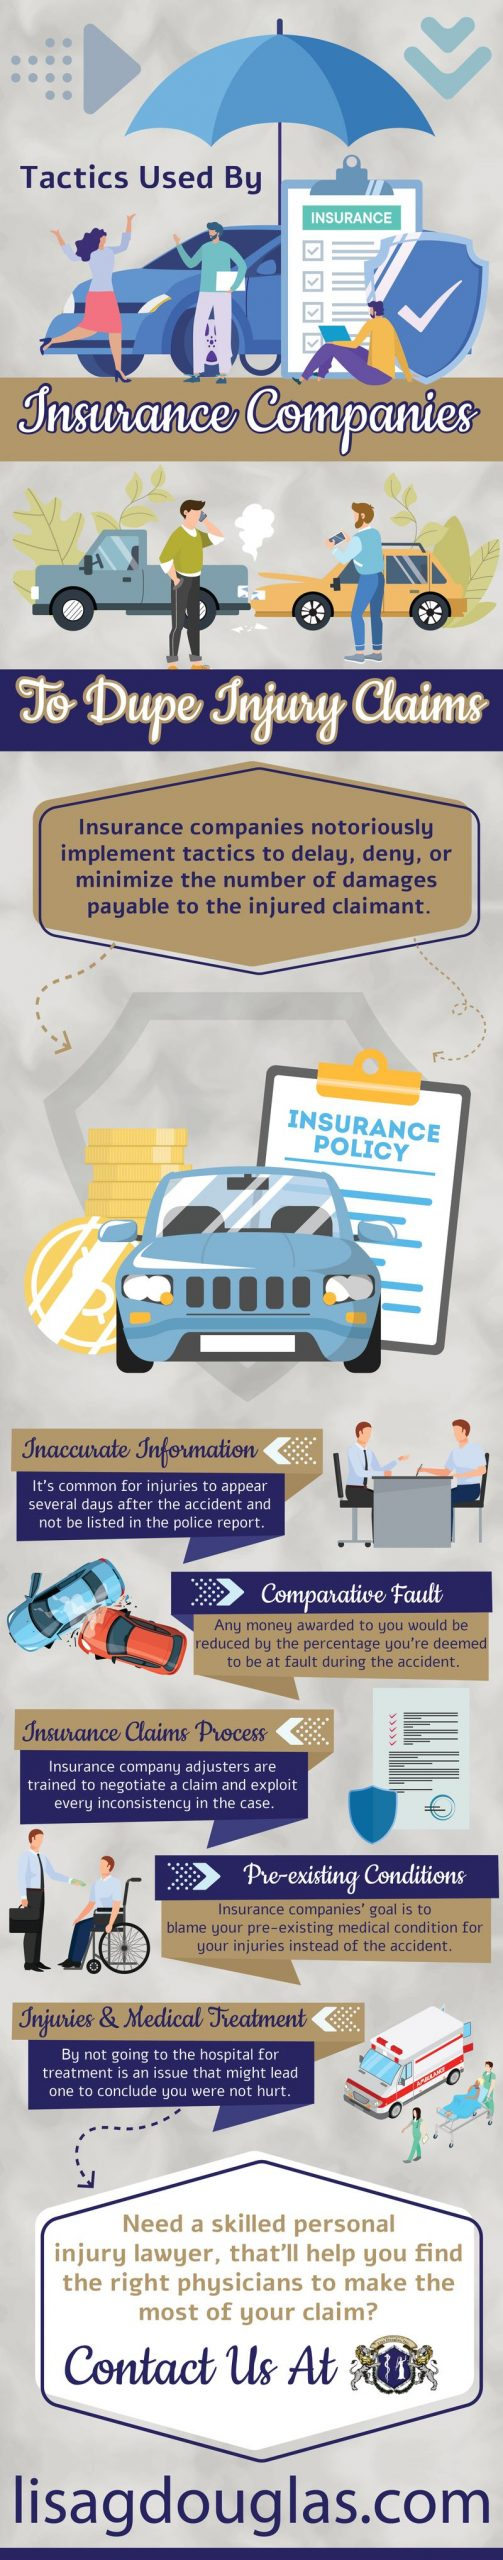 Tactics Used By Insurance Companies